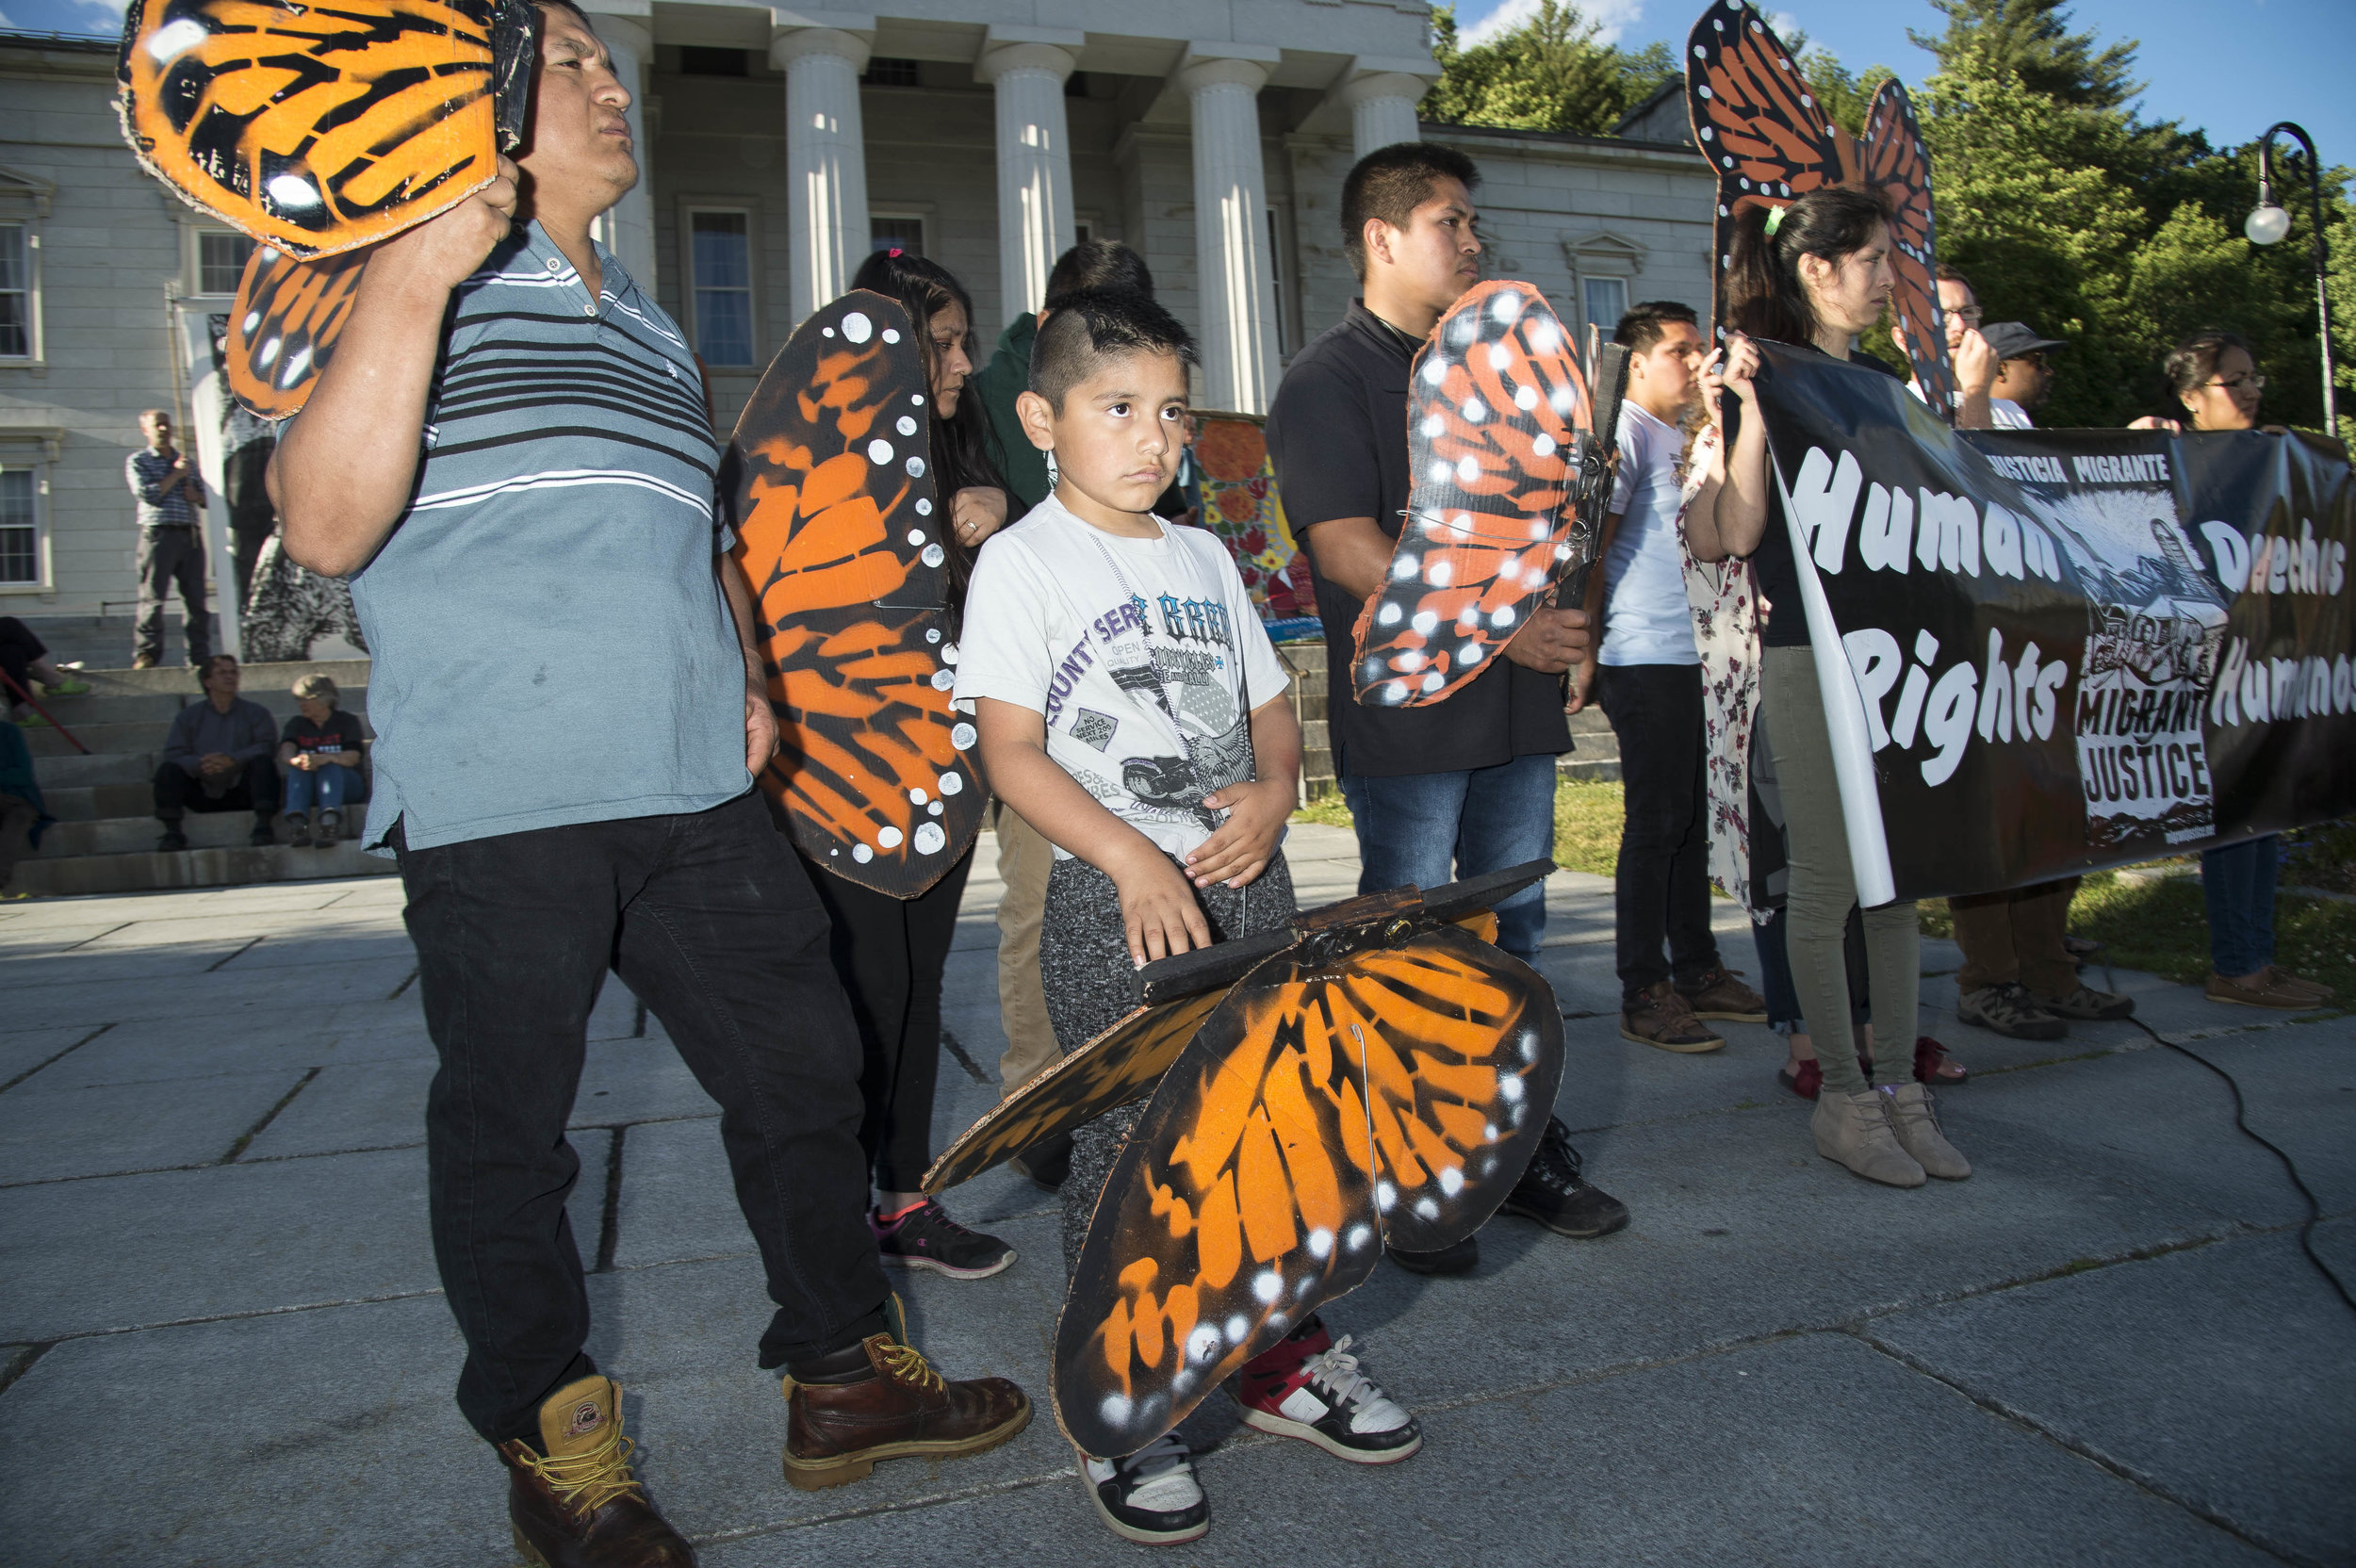 Members of Migrant Justice, a Vermont organization that advocates for migrant workers in the state join with hundreds of Vermonters in protesting U.S. Immigration policy at the State House in Montpelier on June 25th, 2018.